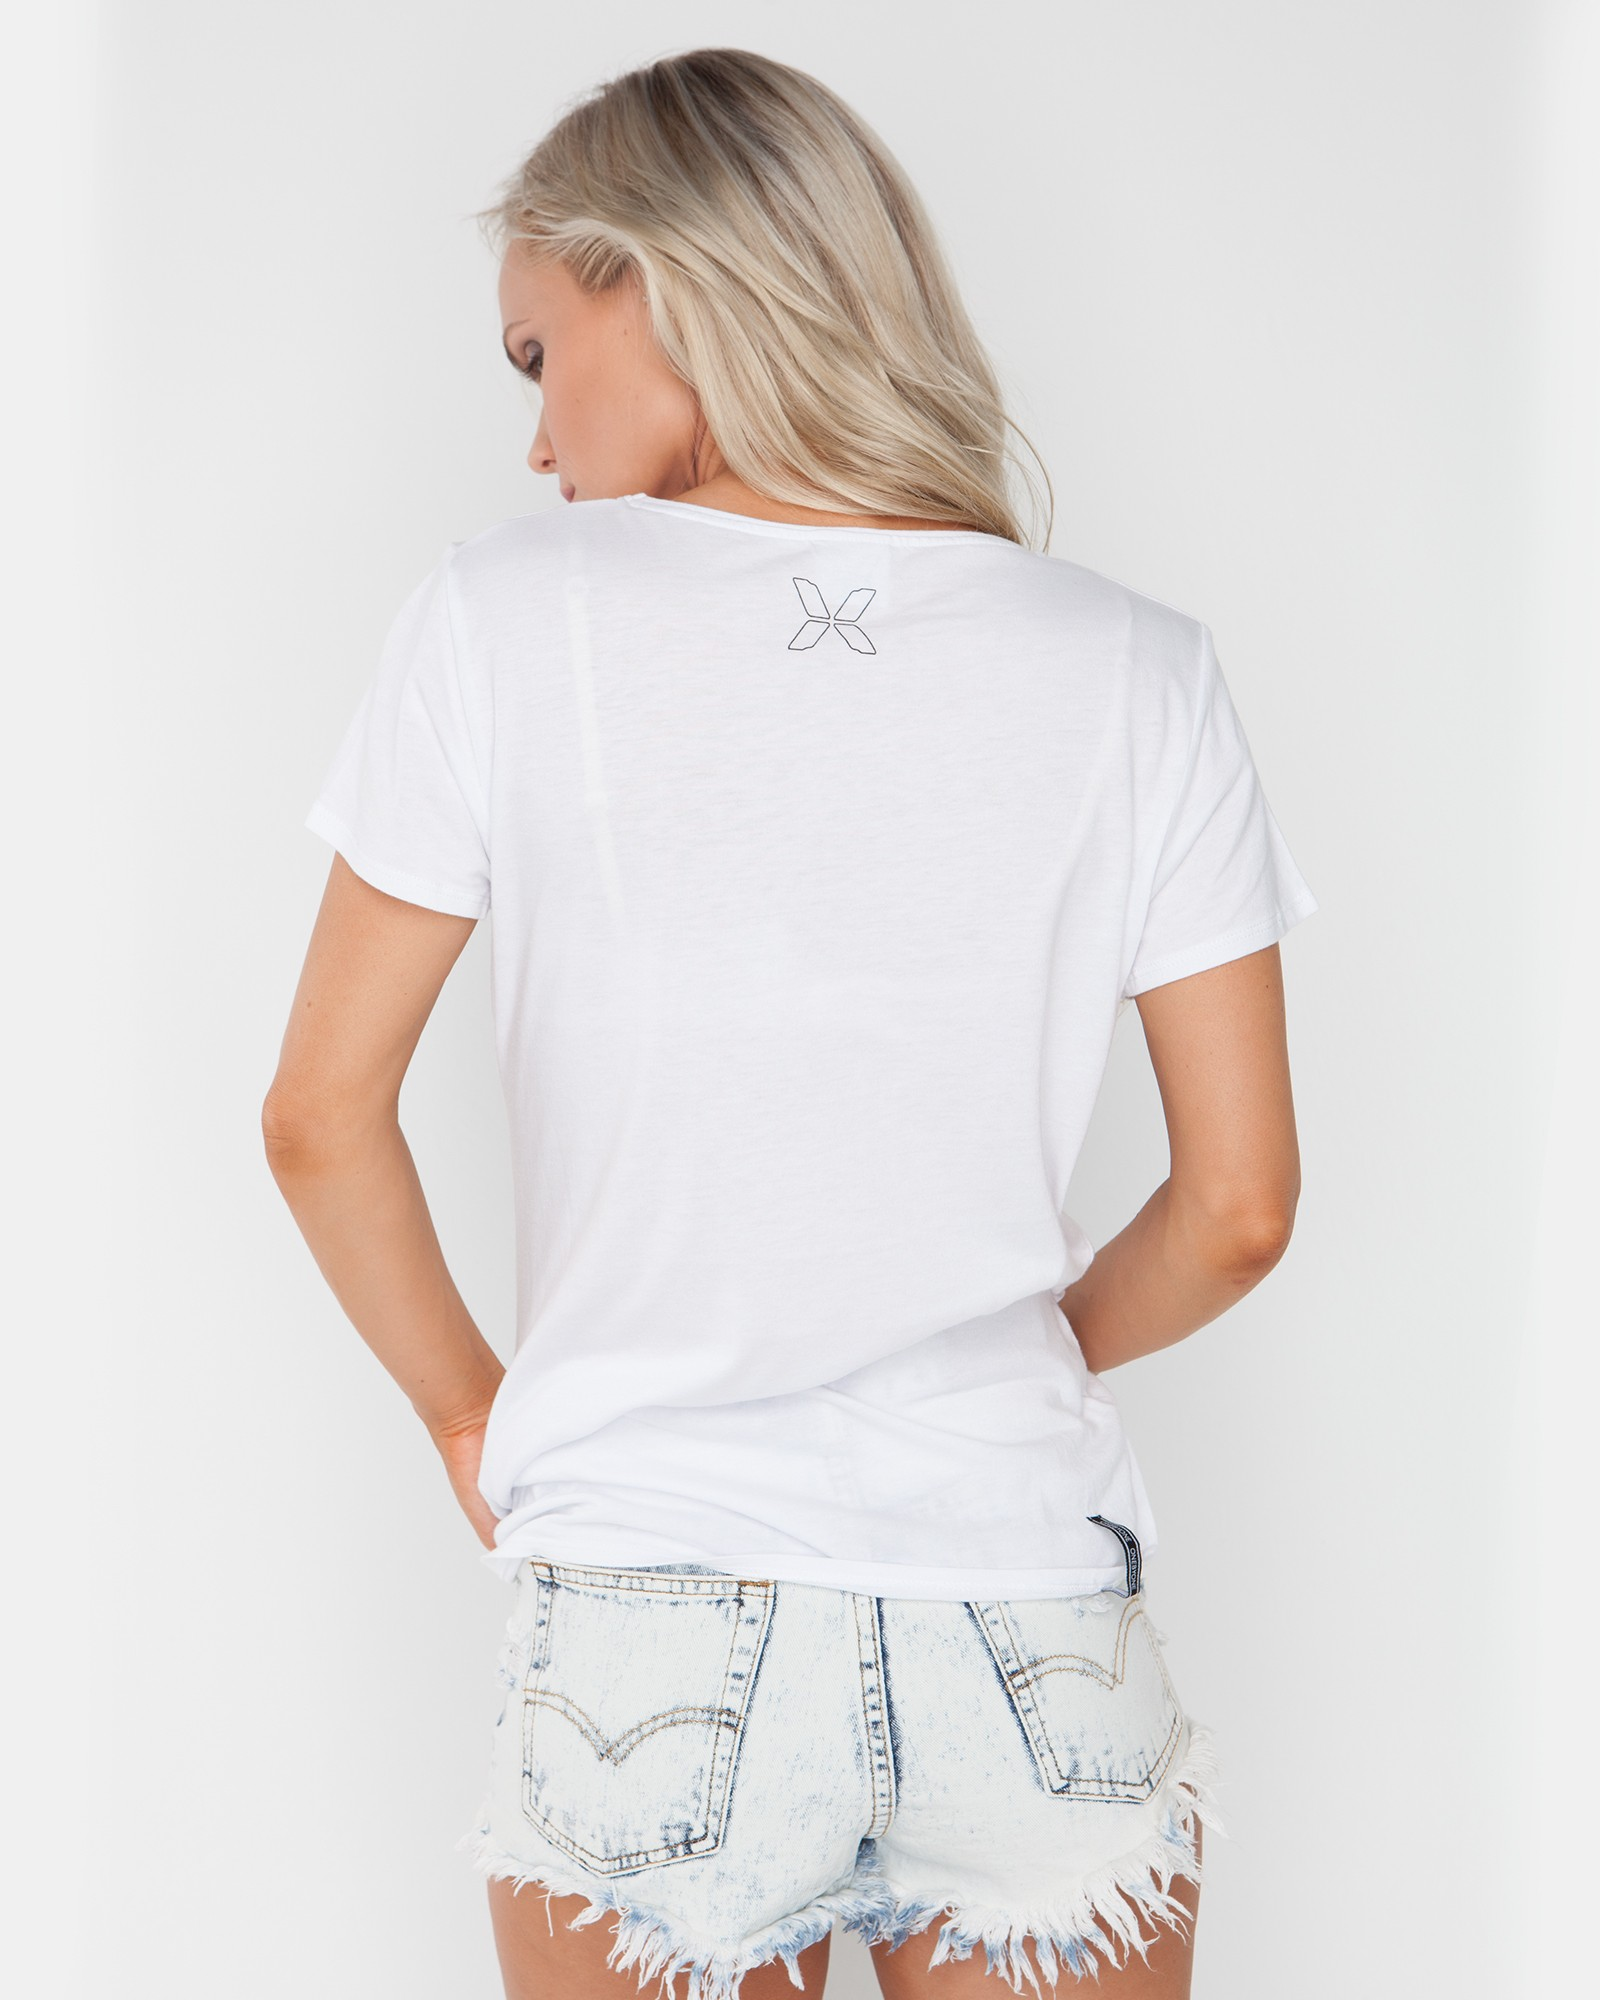 FEATHER GIRL WHITE TEE